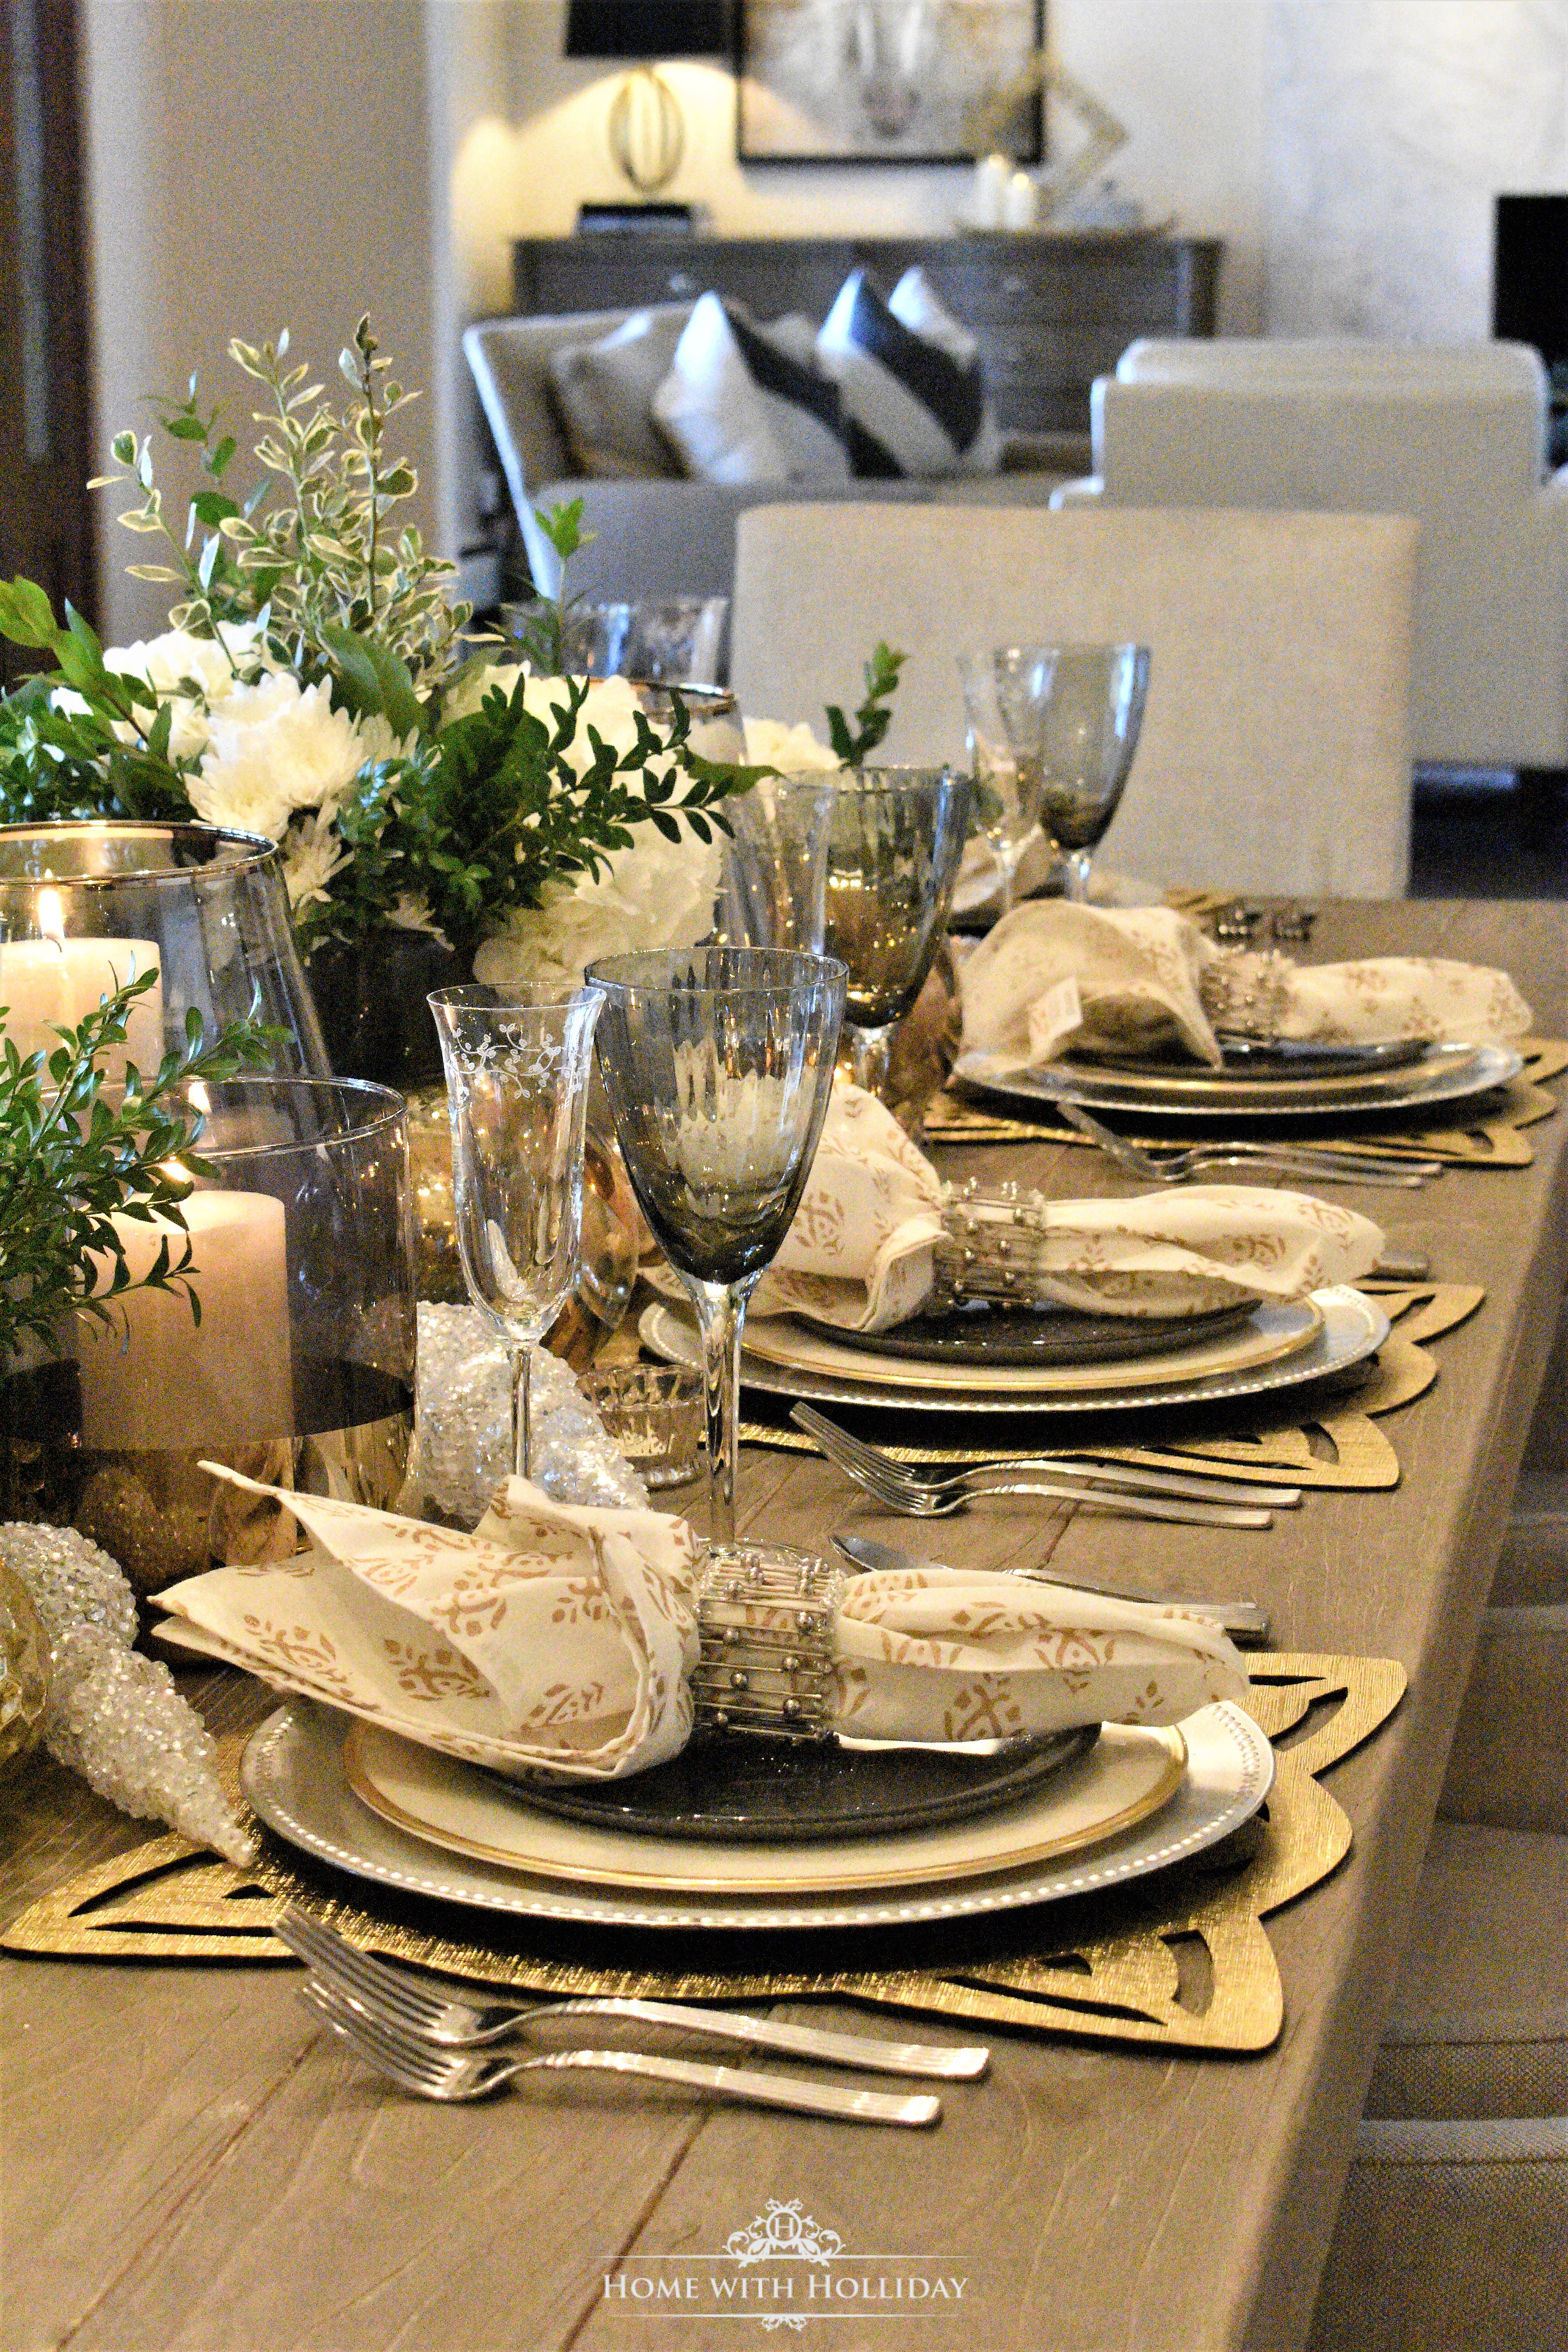 Place Settings for Gold and Silver Table Setting for Christmas or New Year's Eve